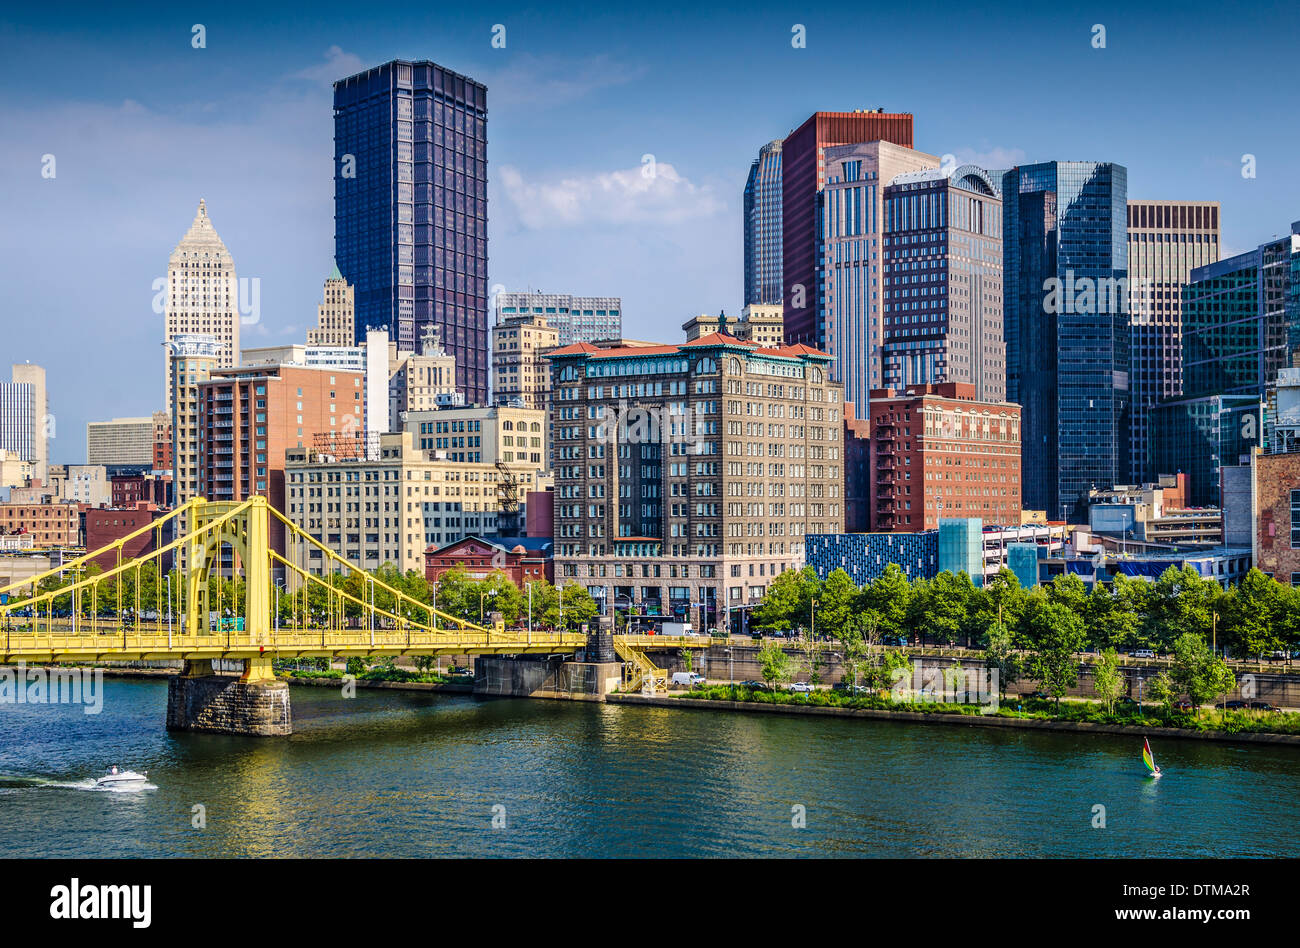 Pittsburgh, Pennsylvania, USA daytime downtown scene over the Allegheny River. - Stock Image